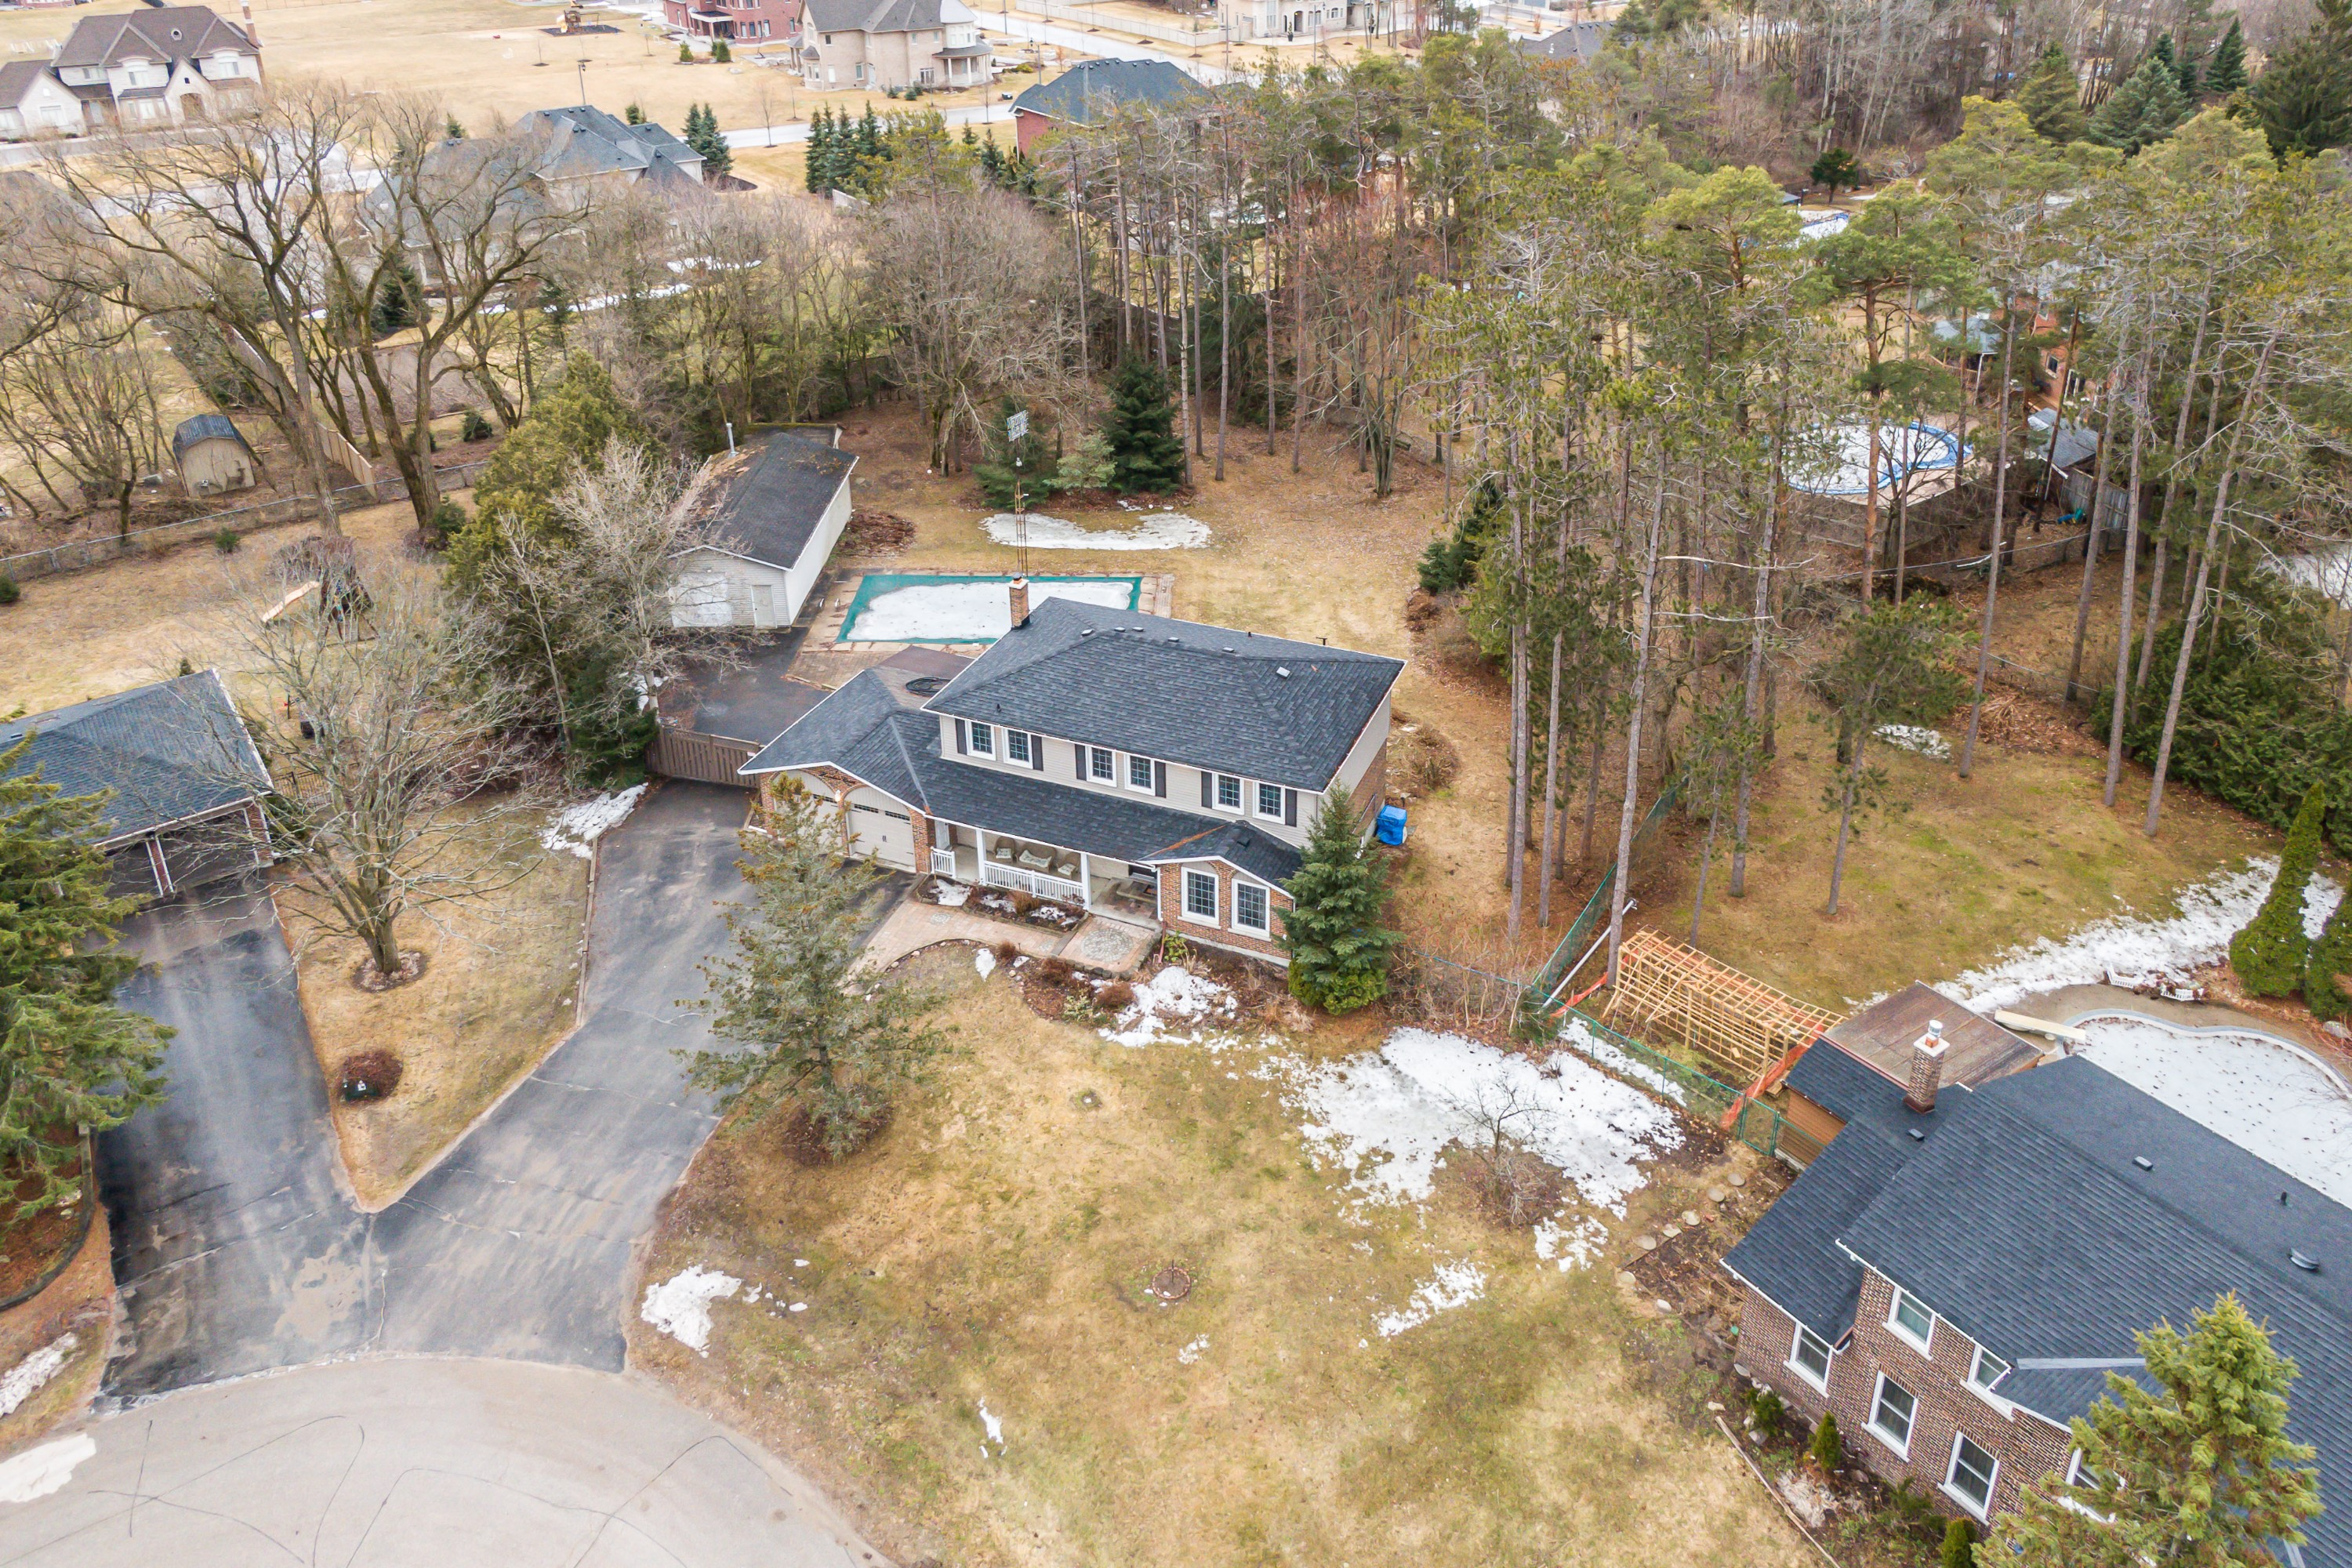 Spectacular Renovated Home On A 3/4 Acre Lot Complete With A Salt-Water Pool & Workshop!